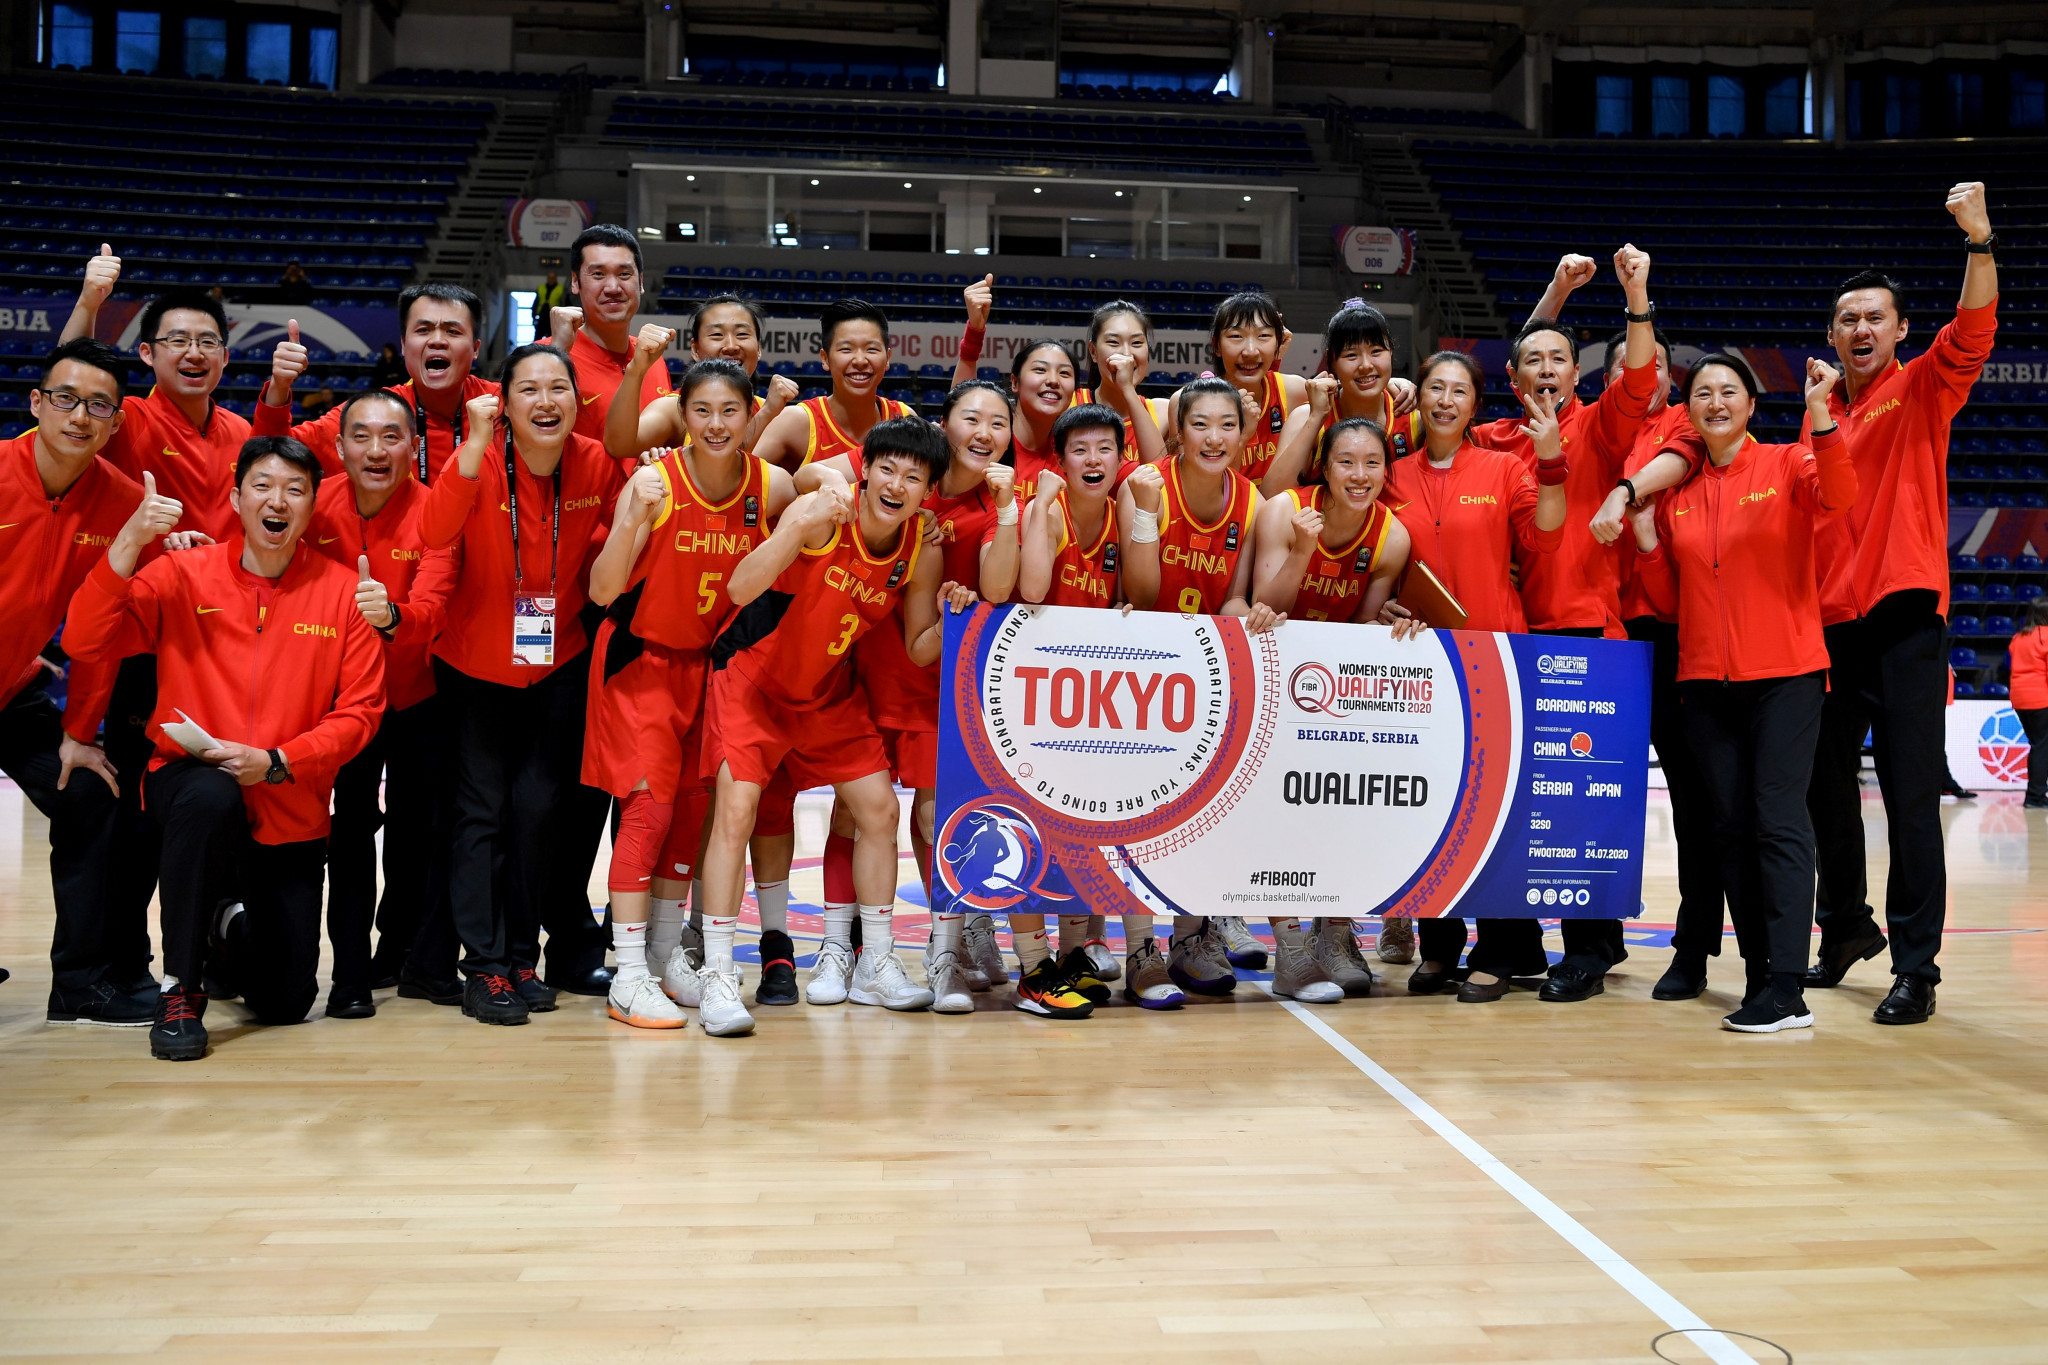 China seal Tokyo 2020 women's basketball berth at relocated qualifier in Belgrade